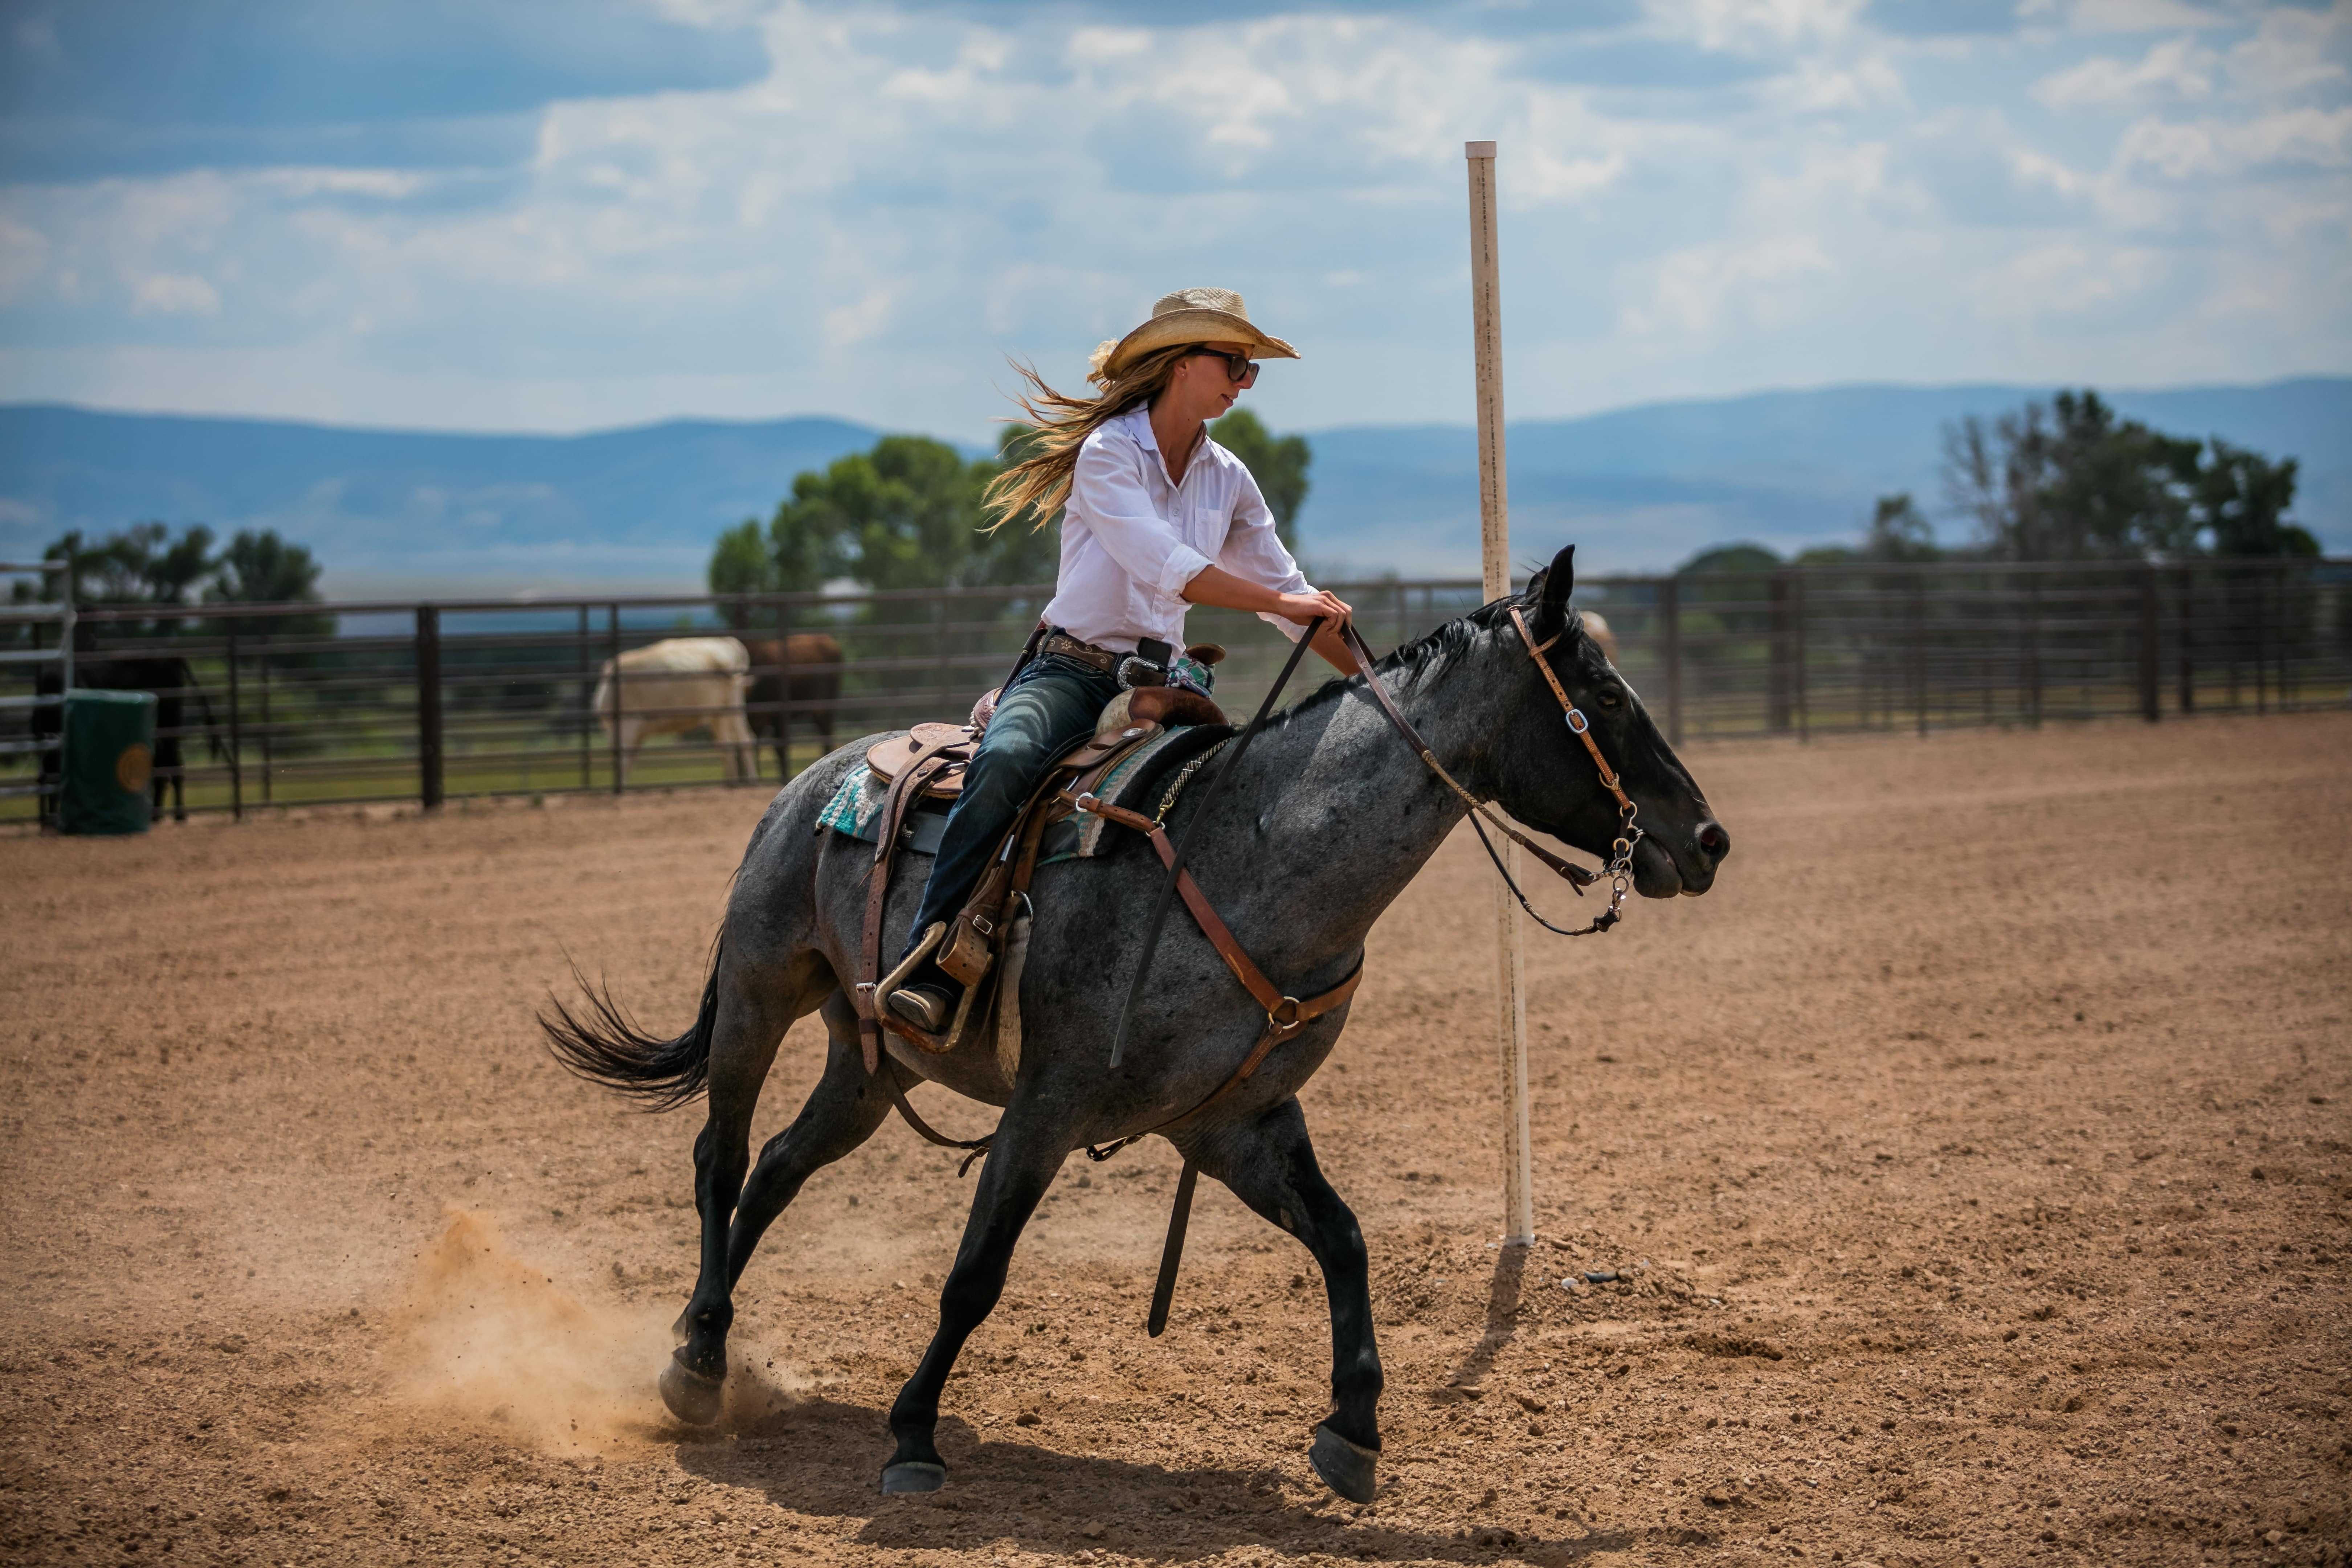 A cowgirl improving her horse-riding skills as she is trotting around the obstacles